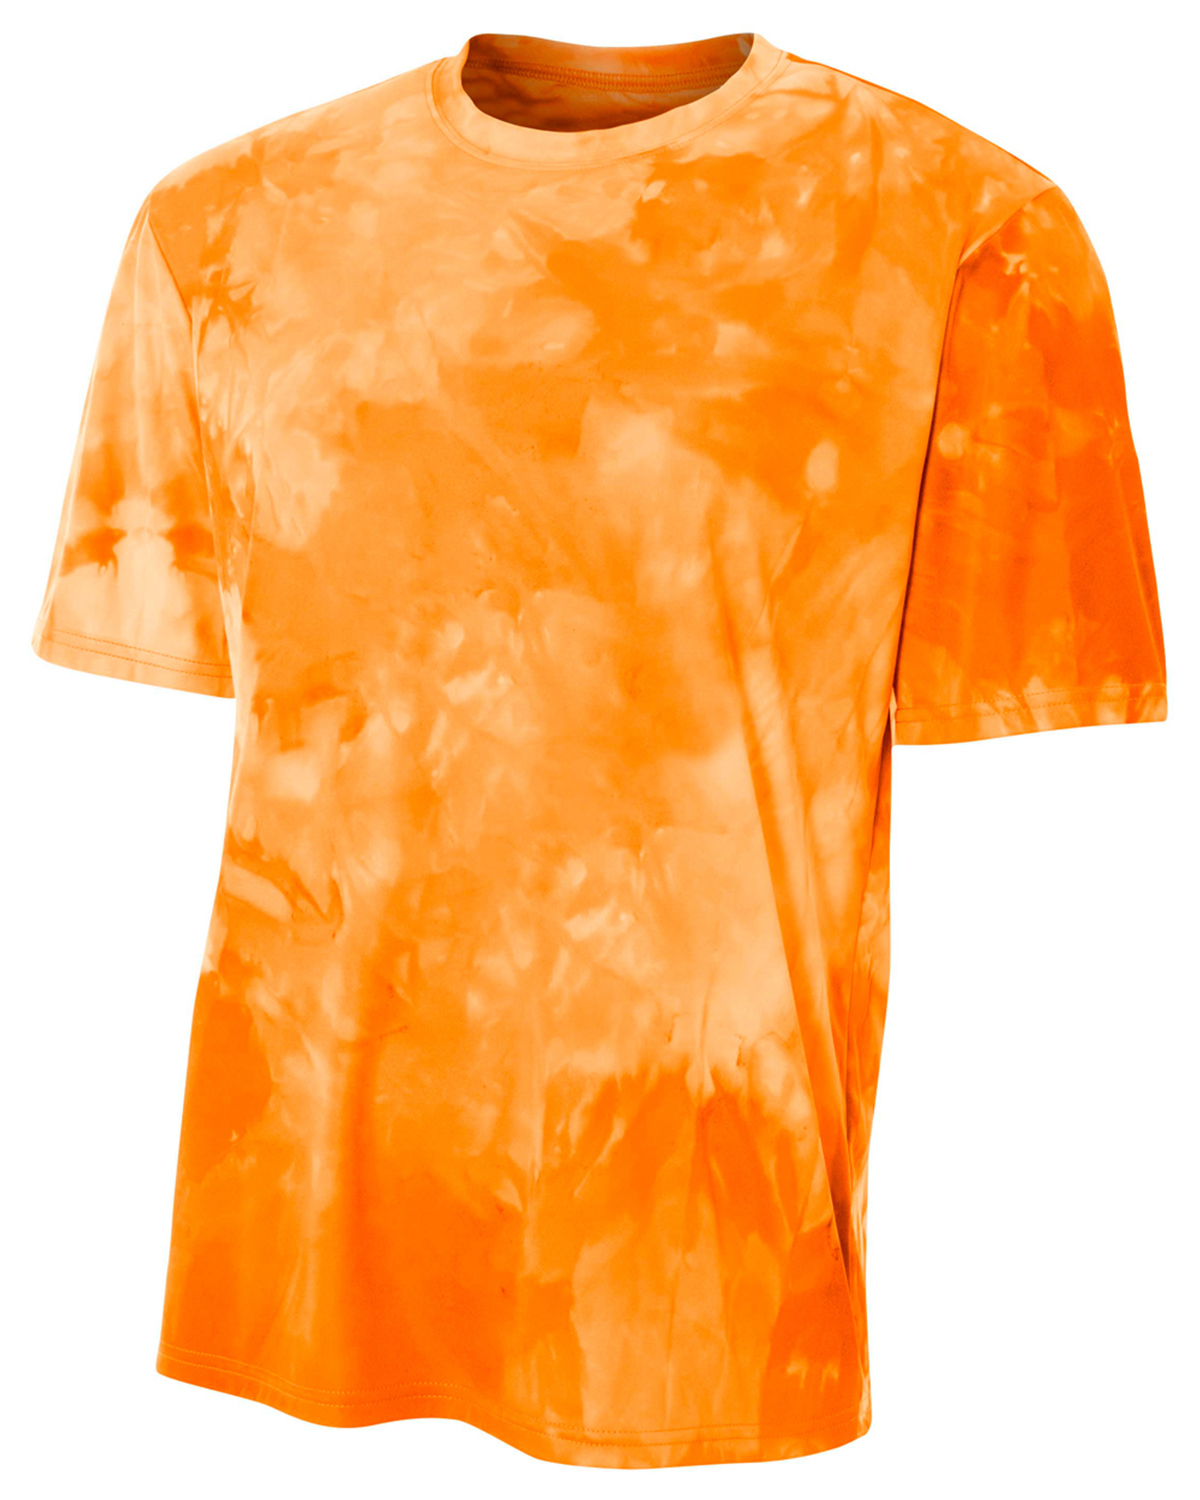 A4 Drop Ship N3295 - Men's Cloud Dye T-Shirt